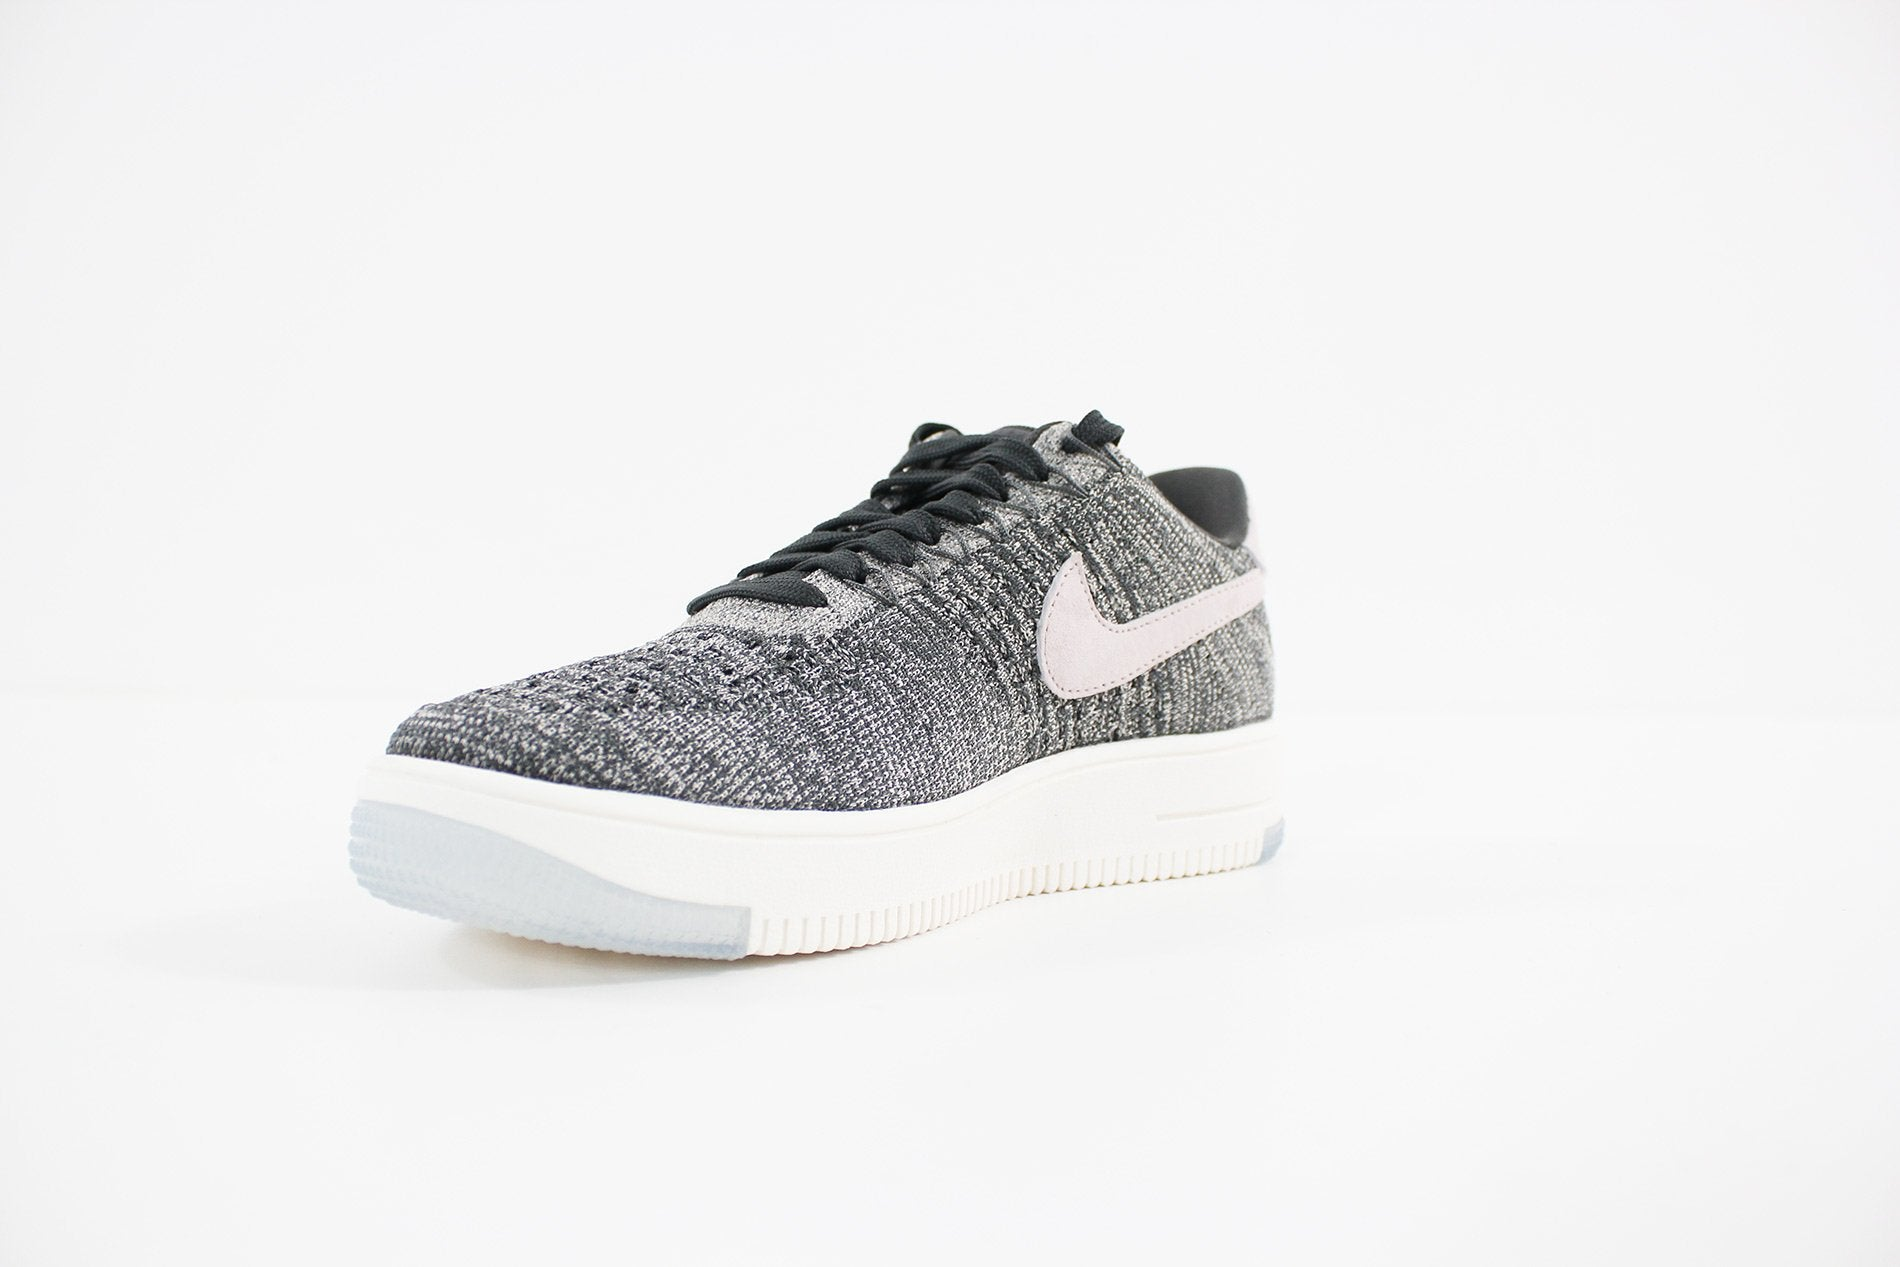 Nike - Air Force 1 Flyknit Low (MIDNIGHT FOG/SILT RED-IVORY-STRING) 820256-008